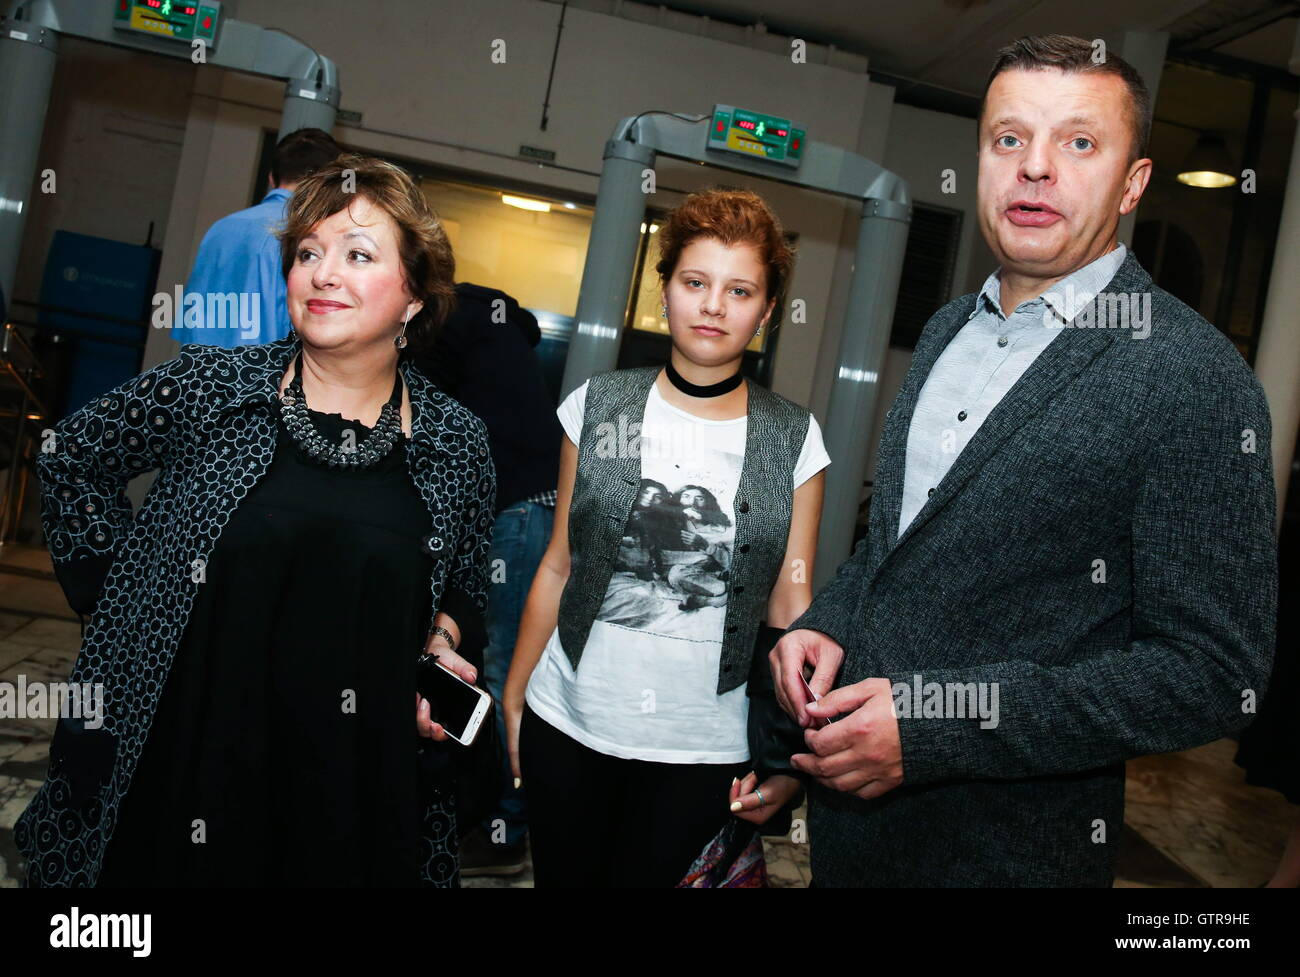 Son of Leonid Parfenov played the wedding for the second time 09/08/2015 16